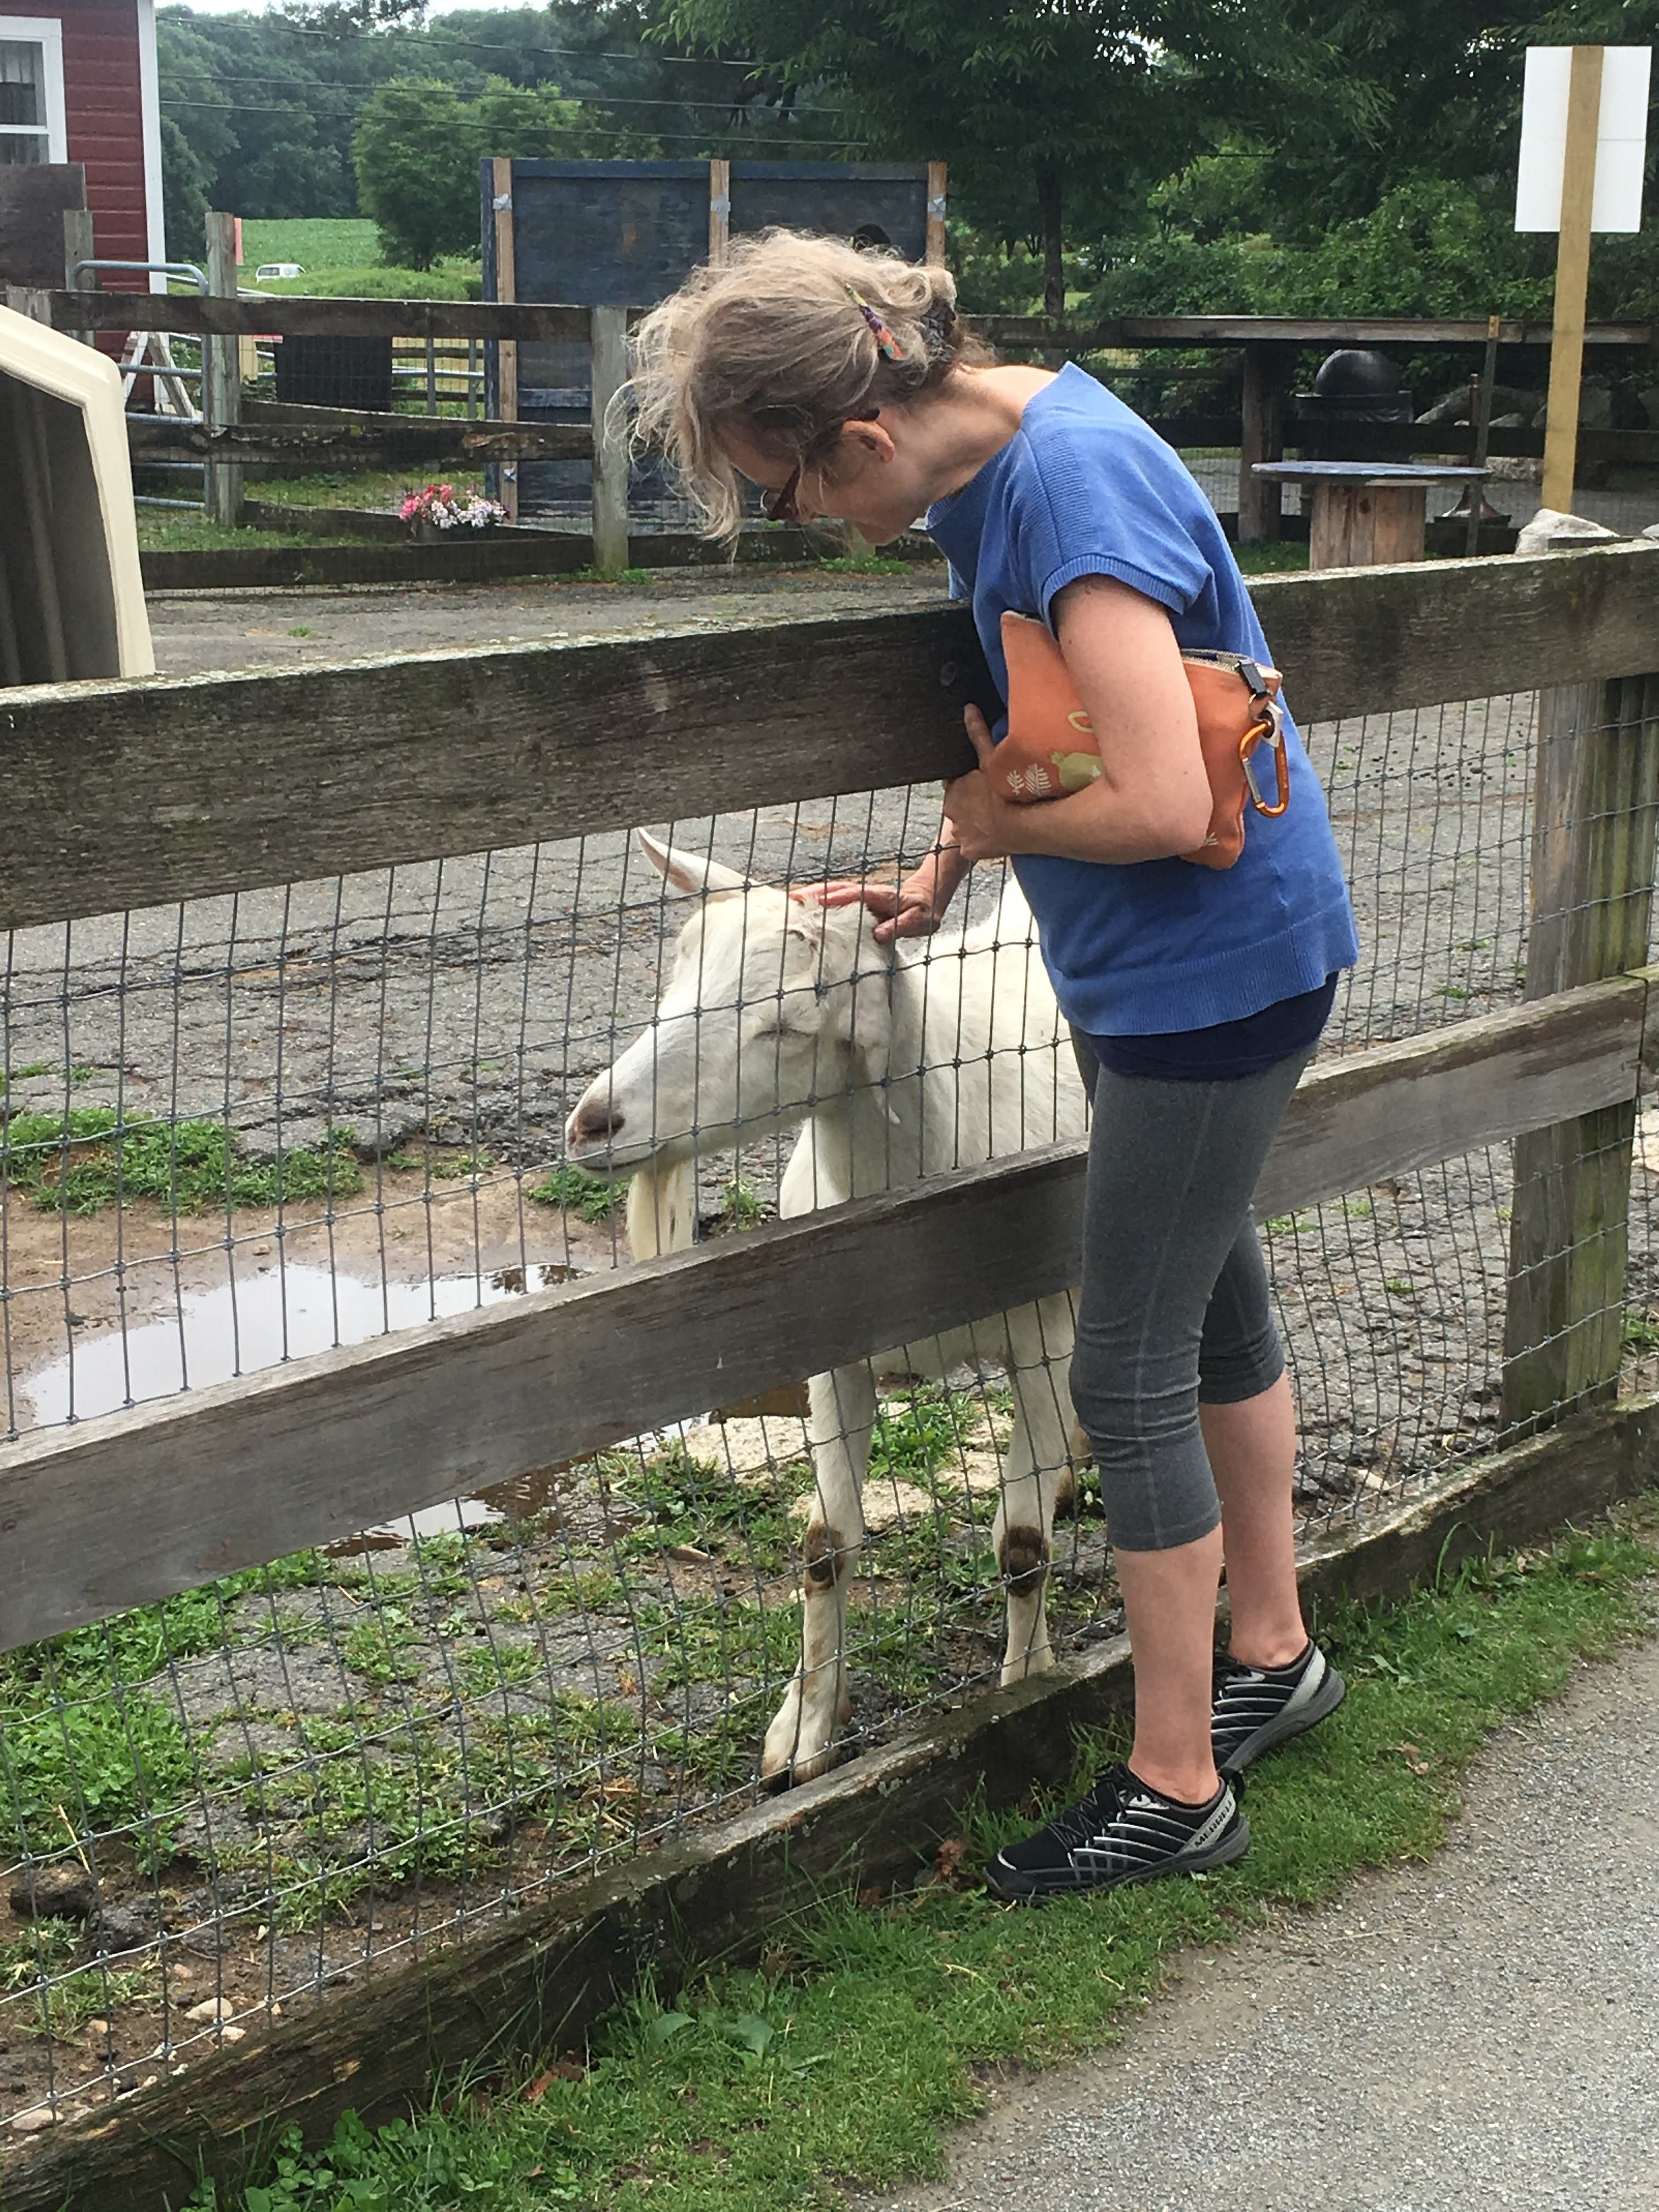 Summer Short Course: Animals and Society 2018 - meeting a goat after leaving the barn.